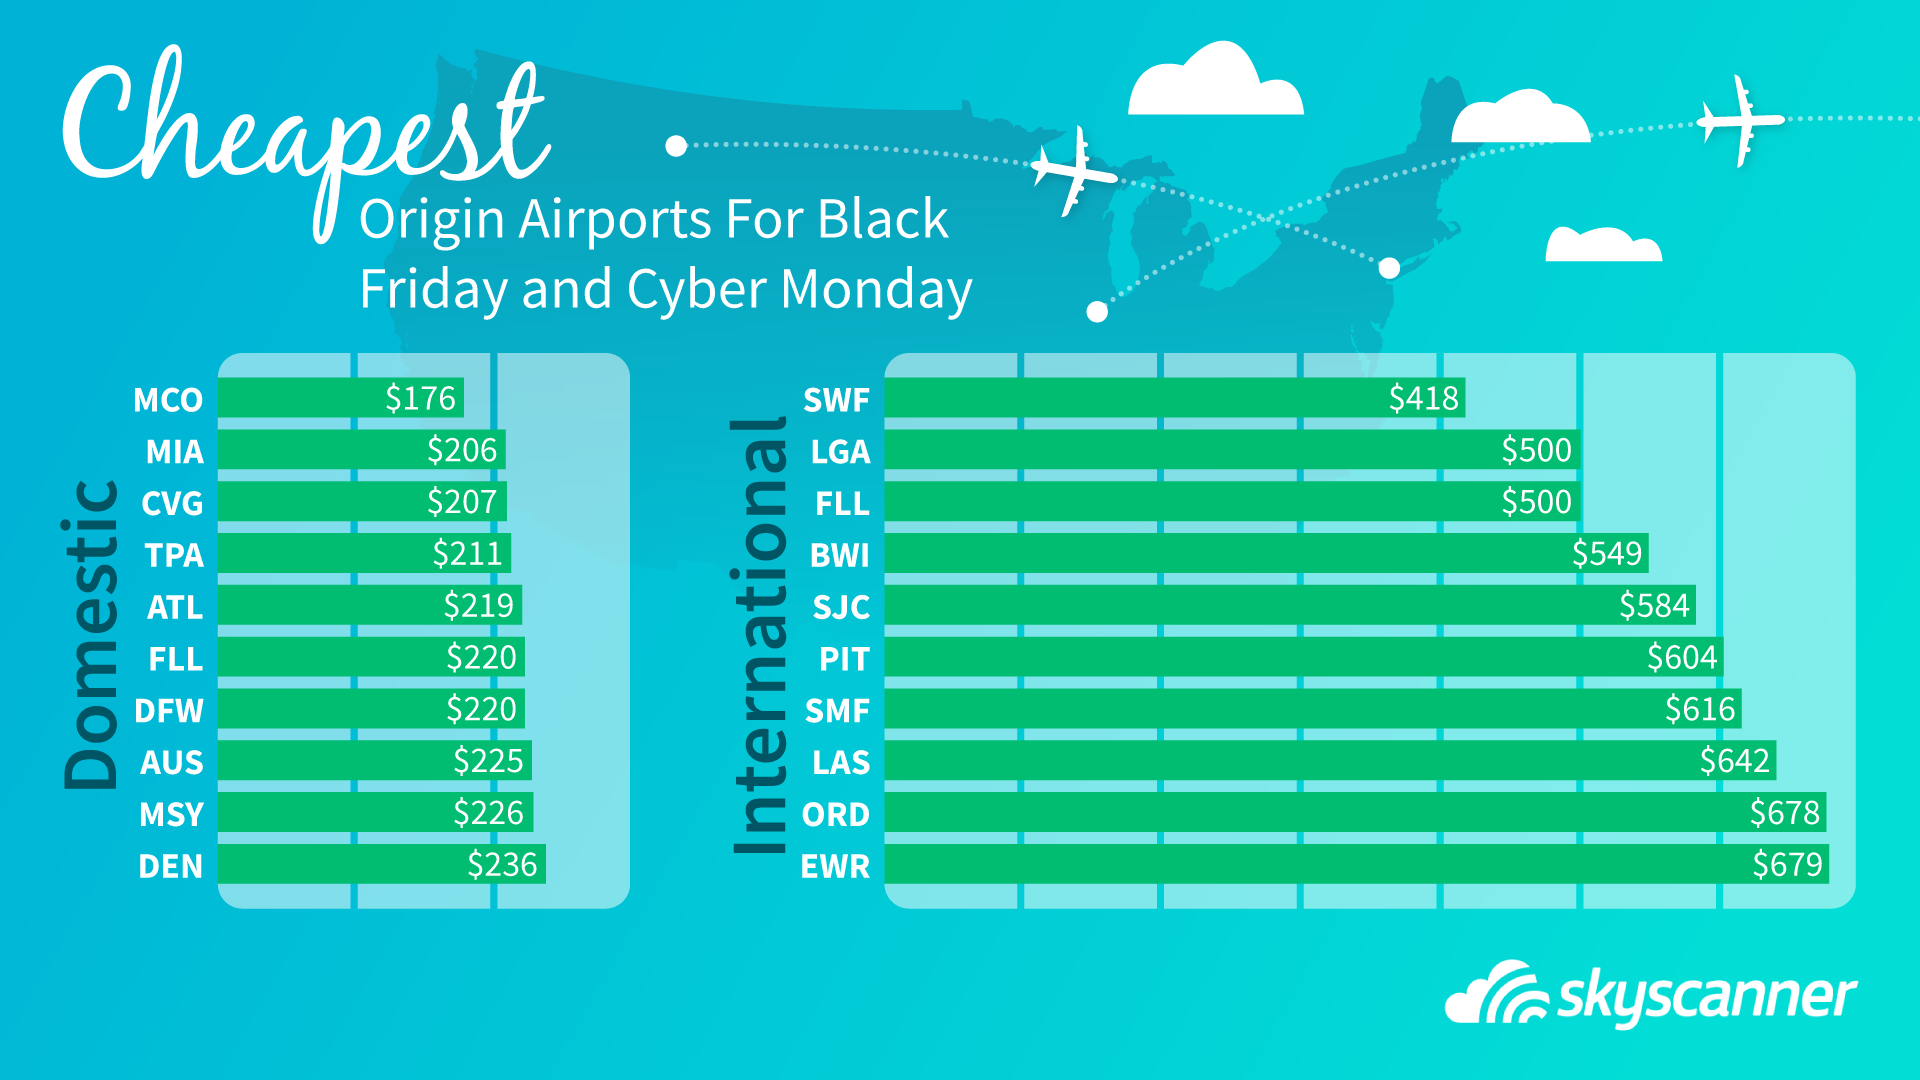 cheapest origin airports to fly from on black friday and cyber monday